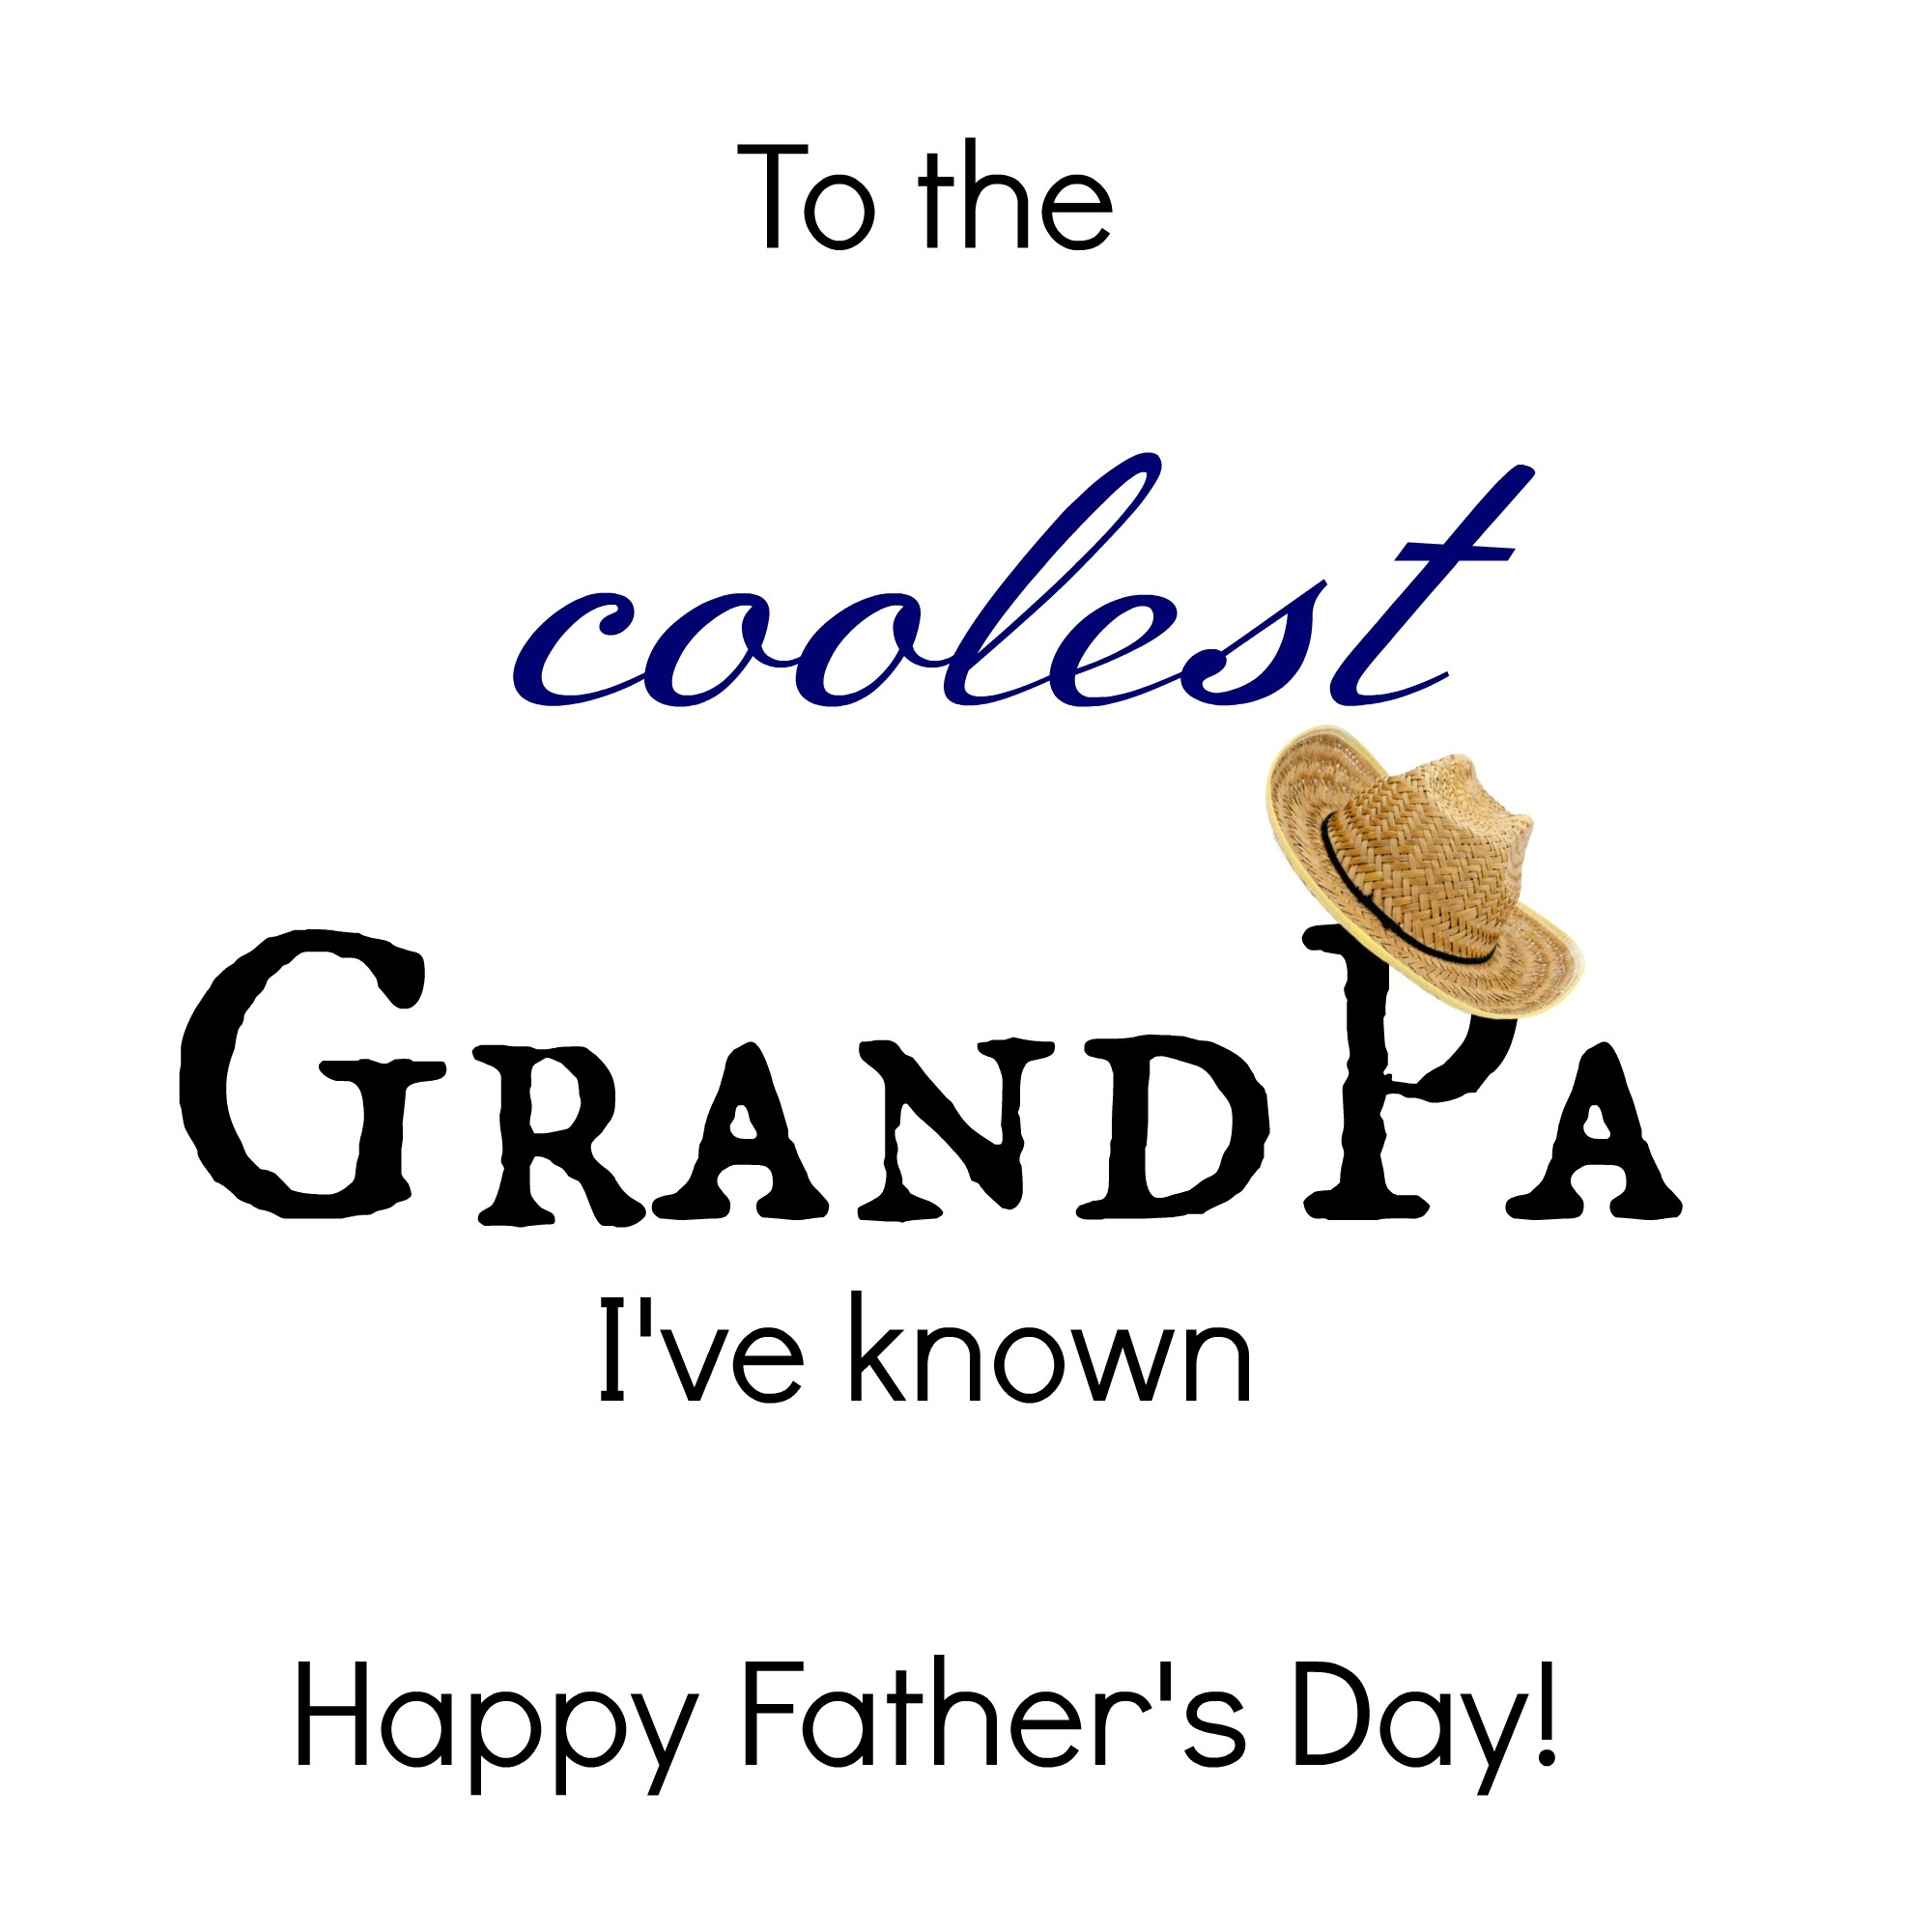 24 Free Printable Father's Day Cards | Kittybabylove - Free Printable Funny Father's Day Cards